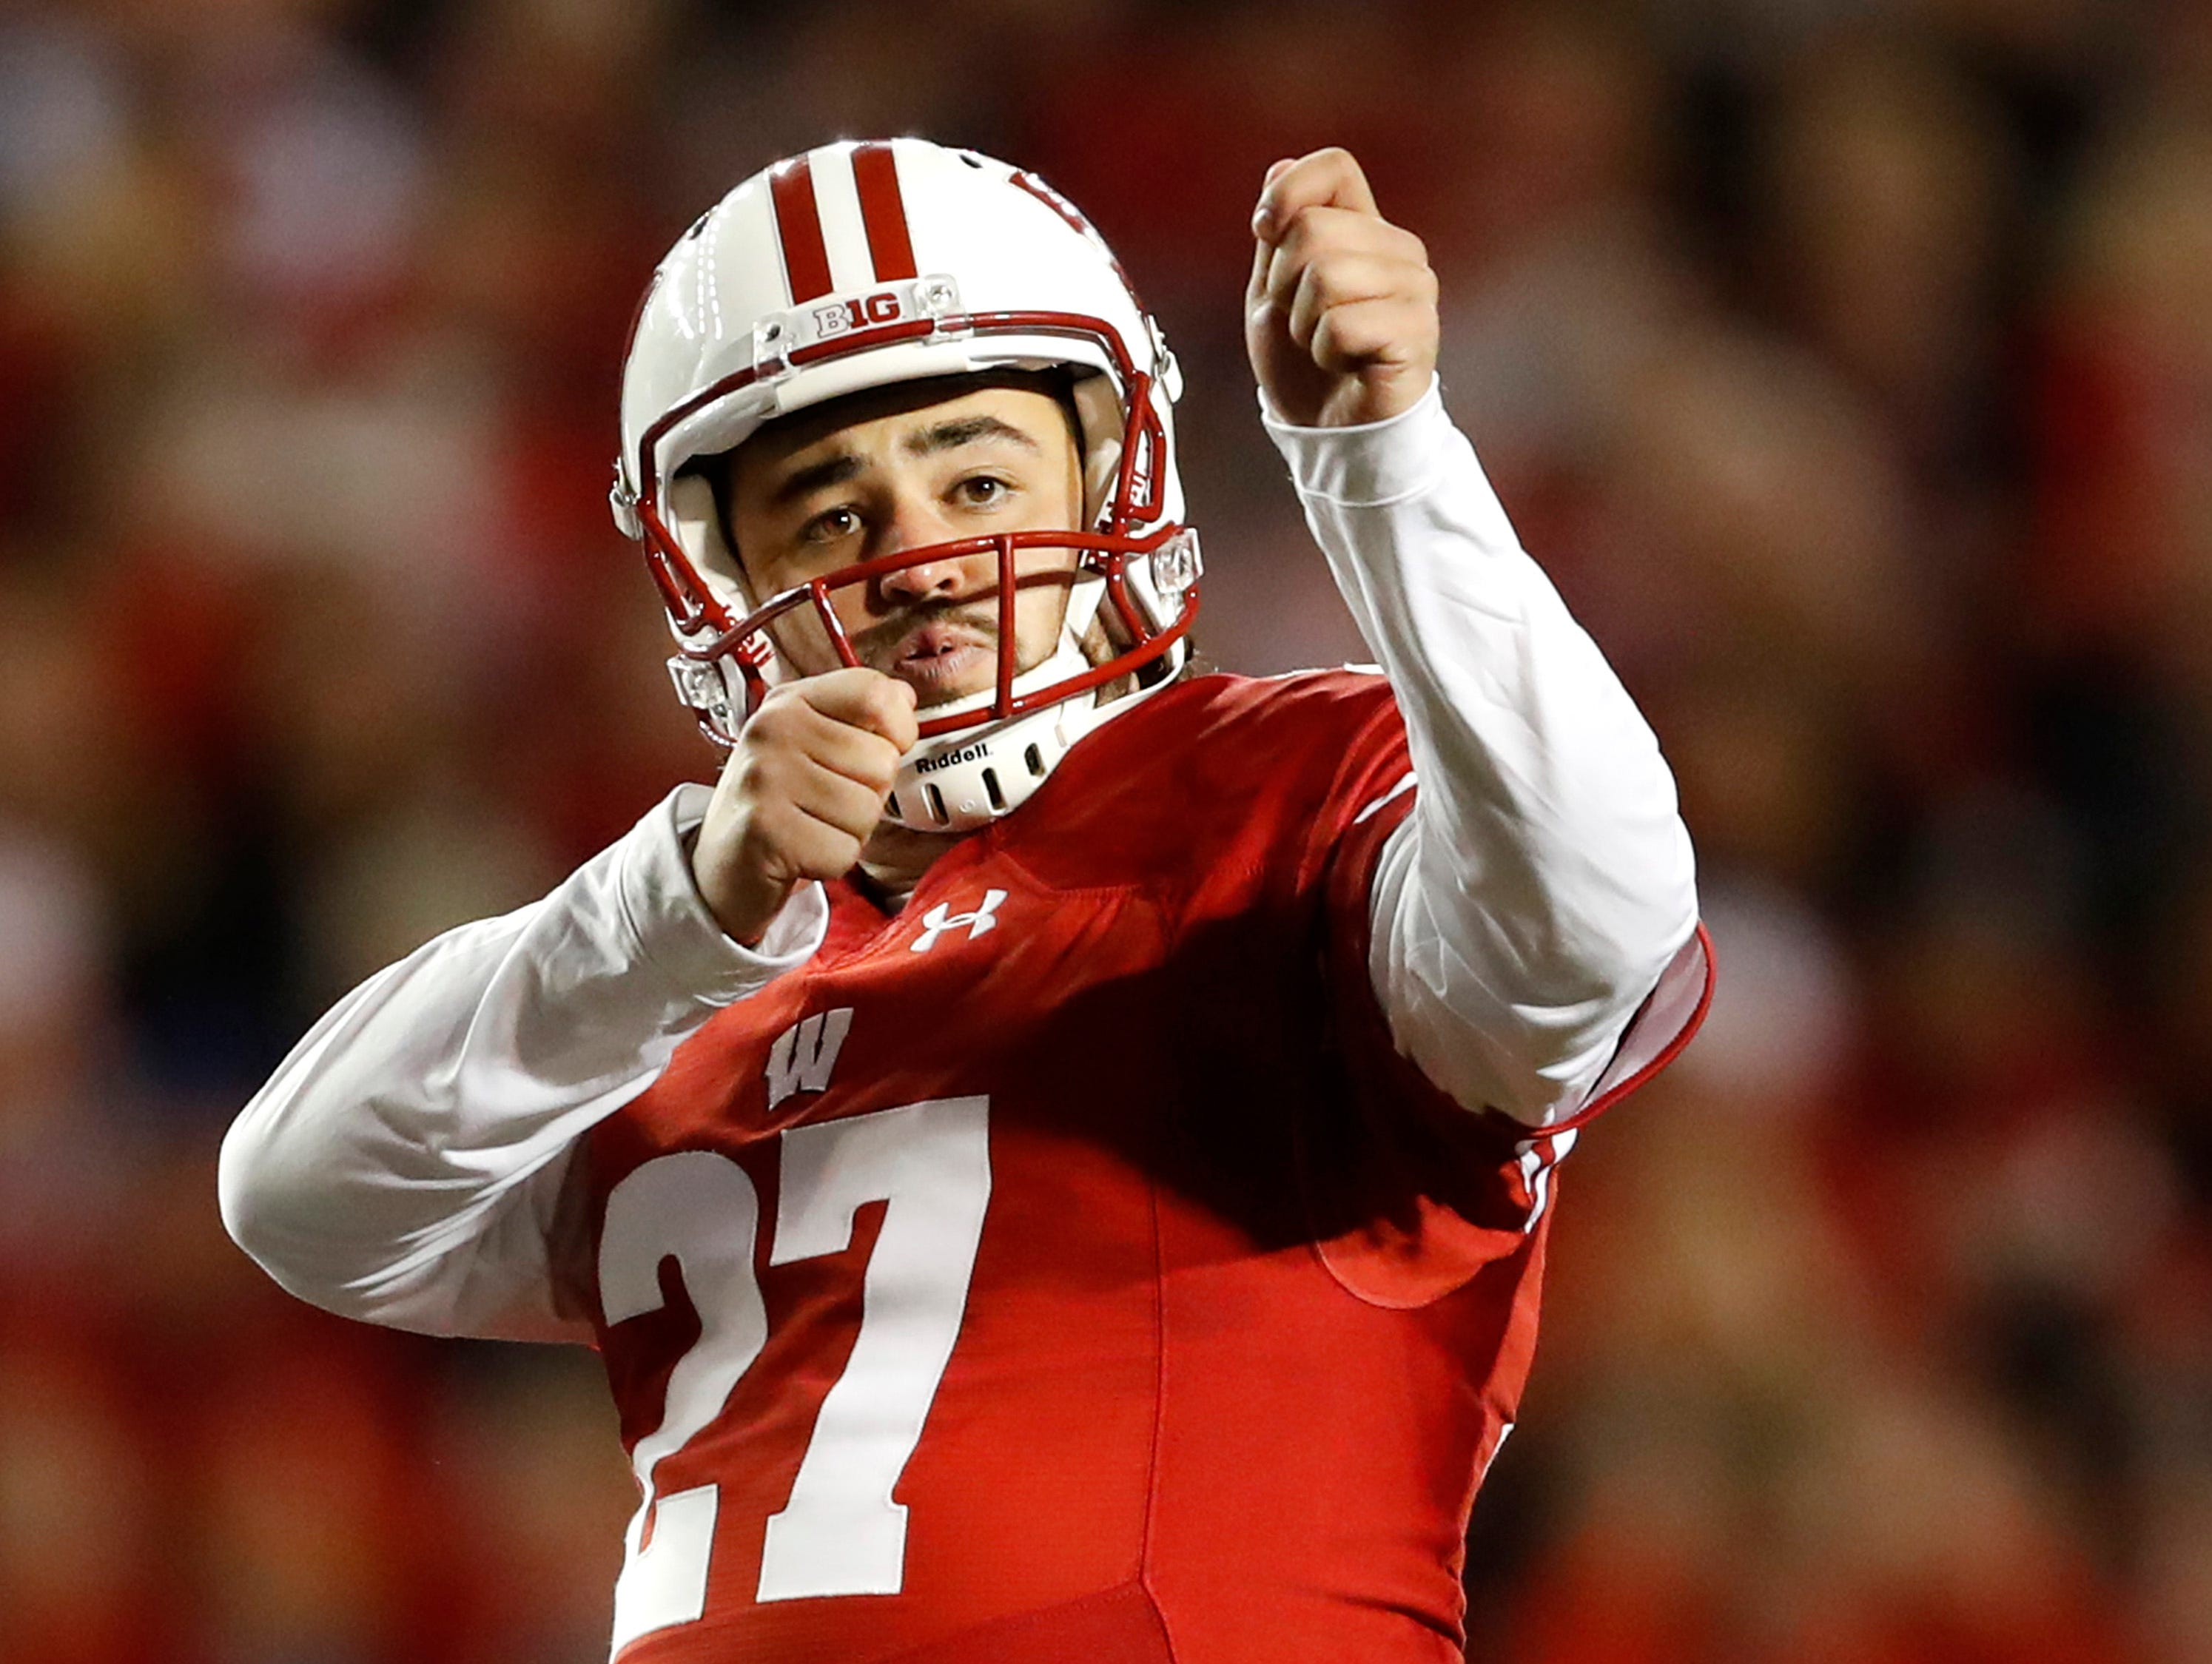 Wisconsin place kicker Rafael Gaglianone celebrates after his first field goal of the game against Nebraska Saturday, Oct. 6, 2018, at Camp Randall Stadium in Madison, Wis.